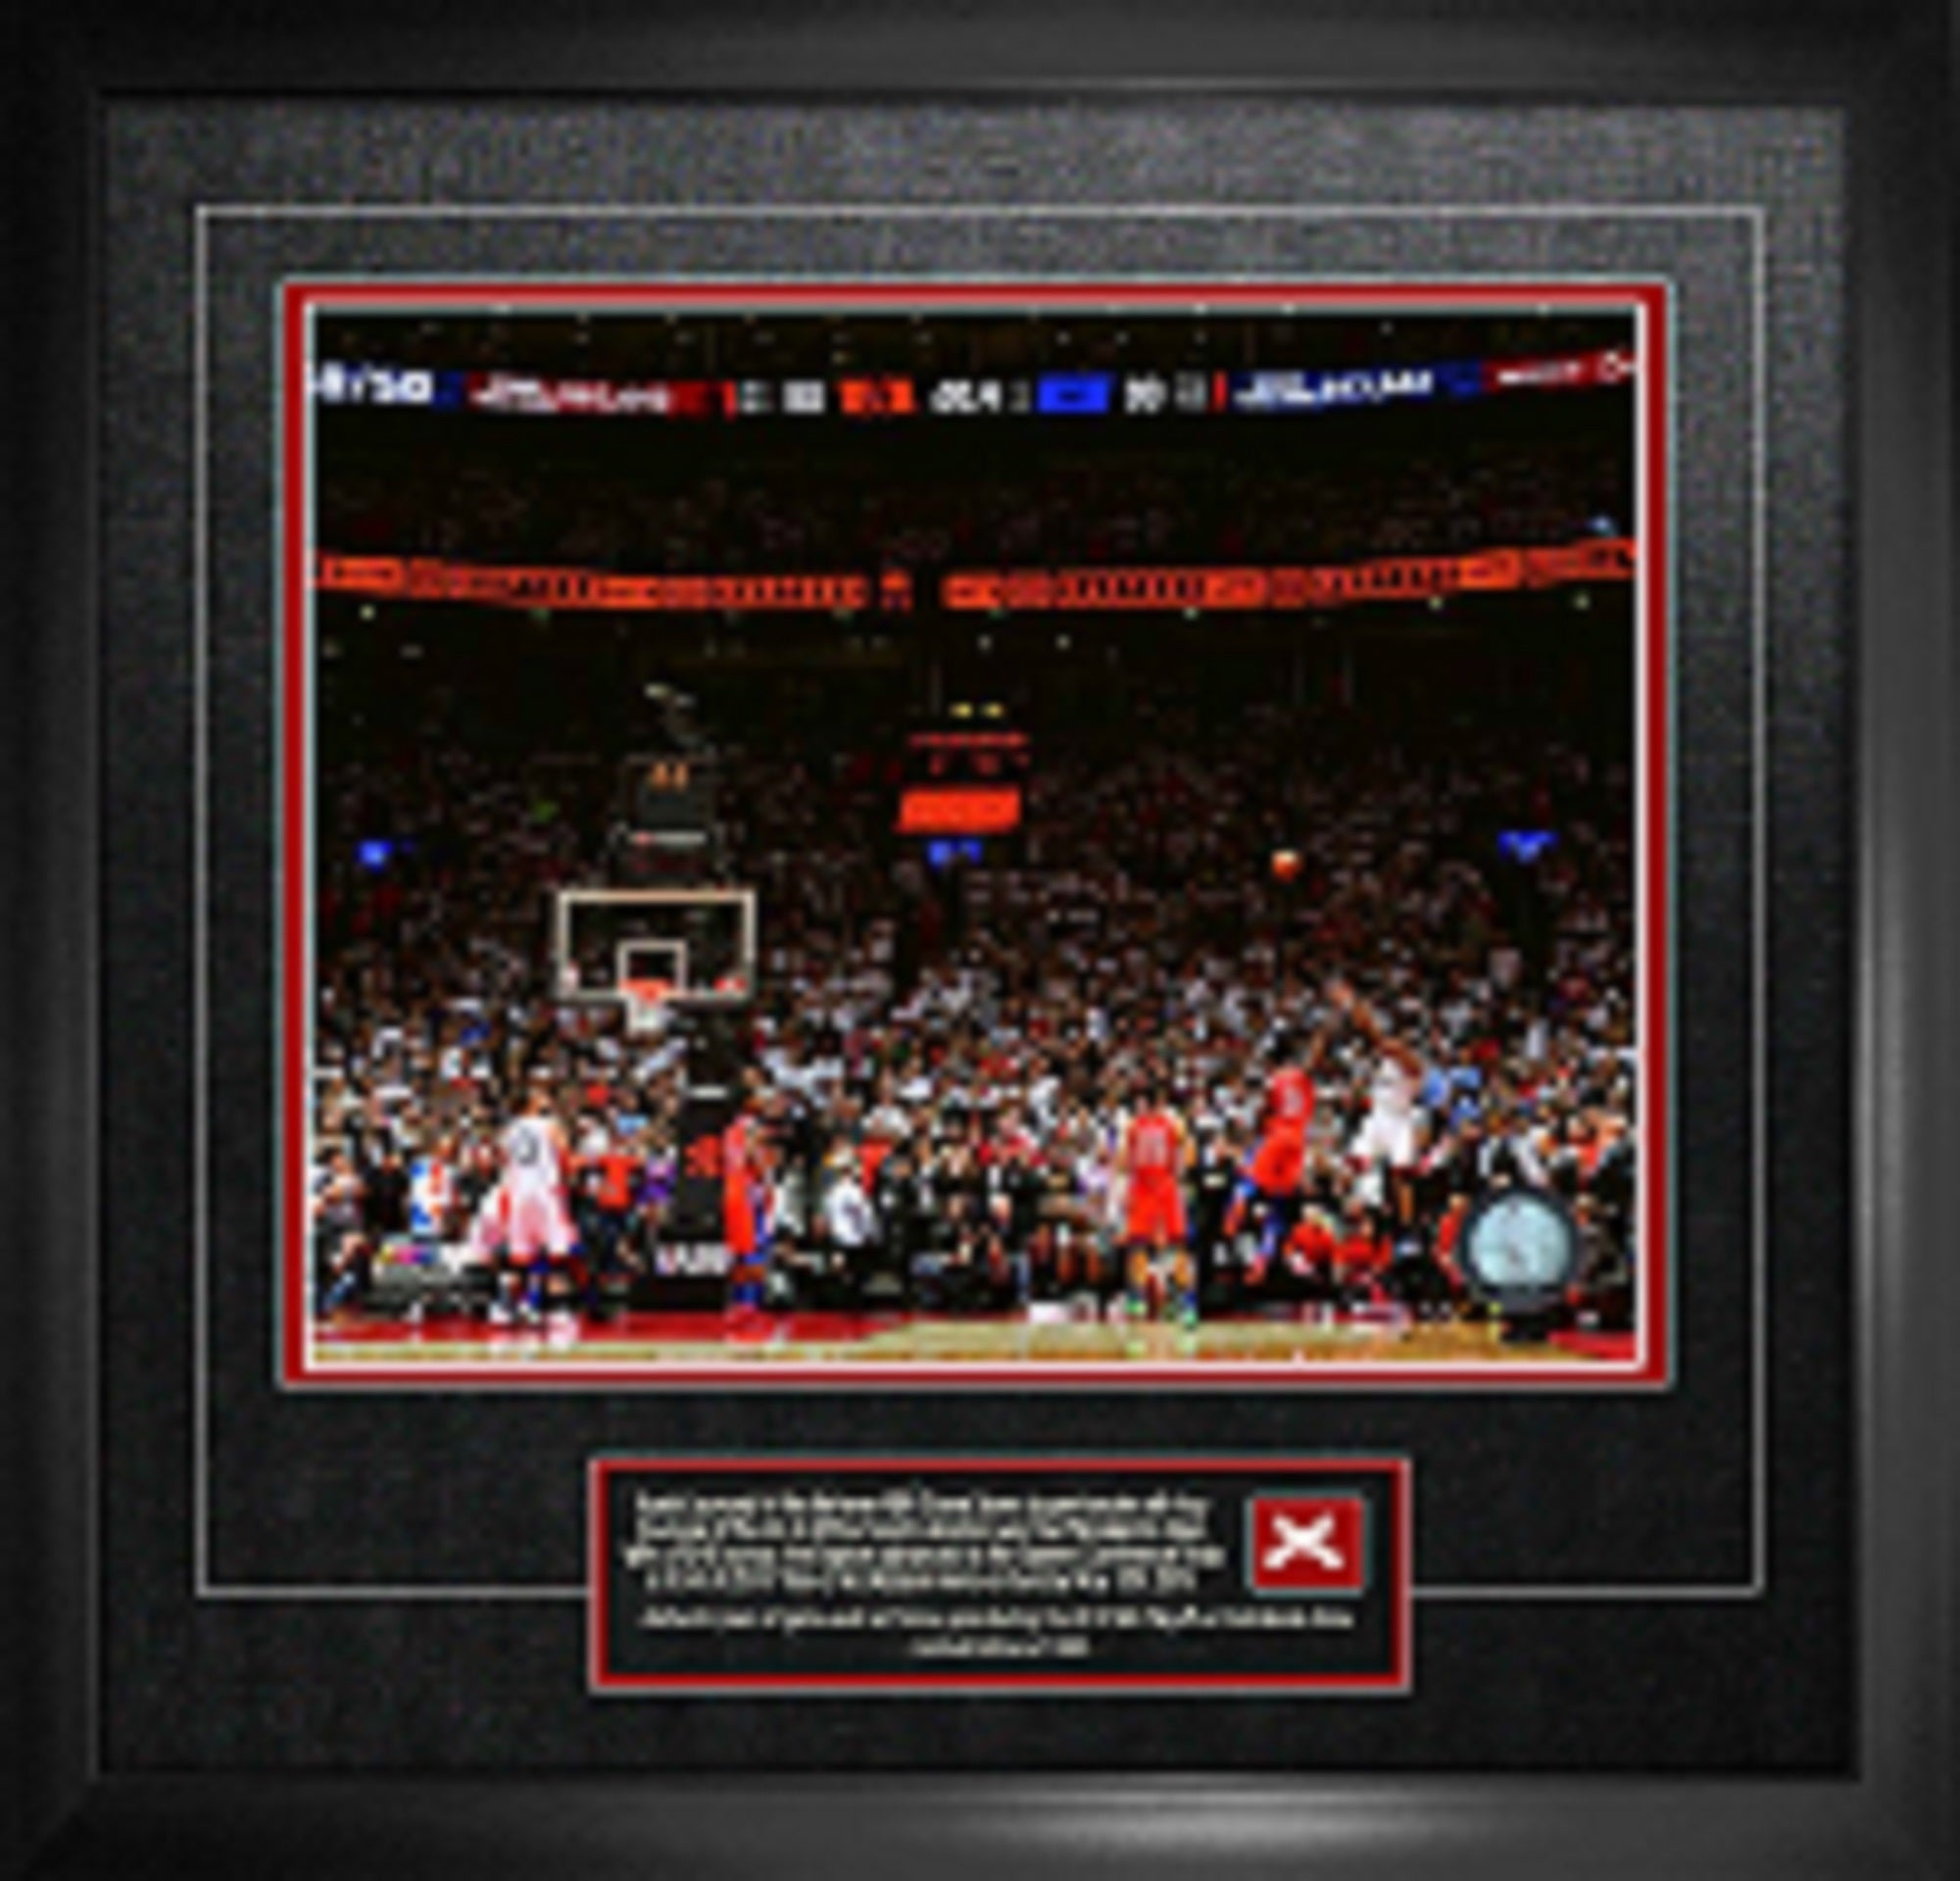 Raptors Kawhi Leonard Unsigned Game 7 Buzzer Beater vs Philadelphia with Game-Used Netting Framed